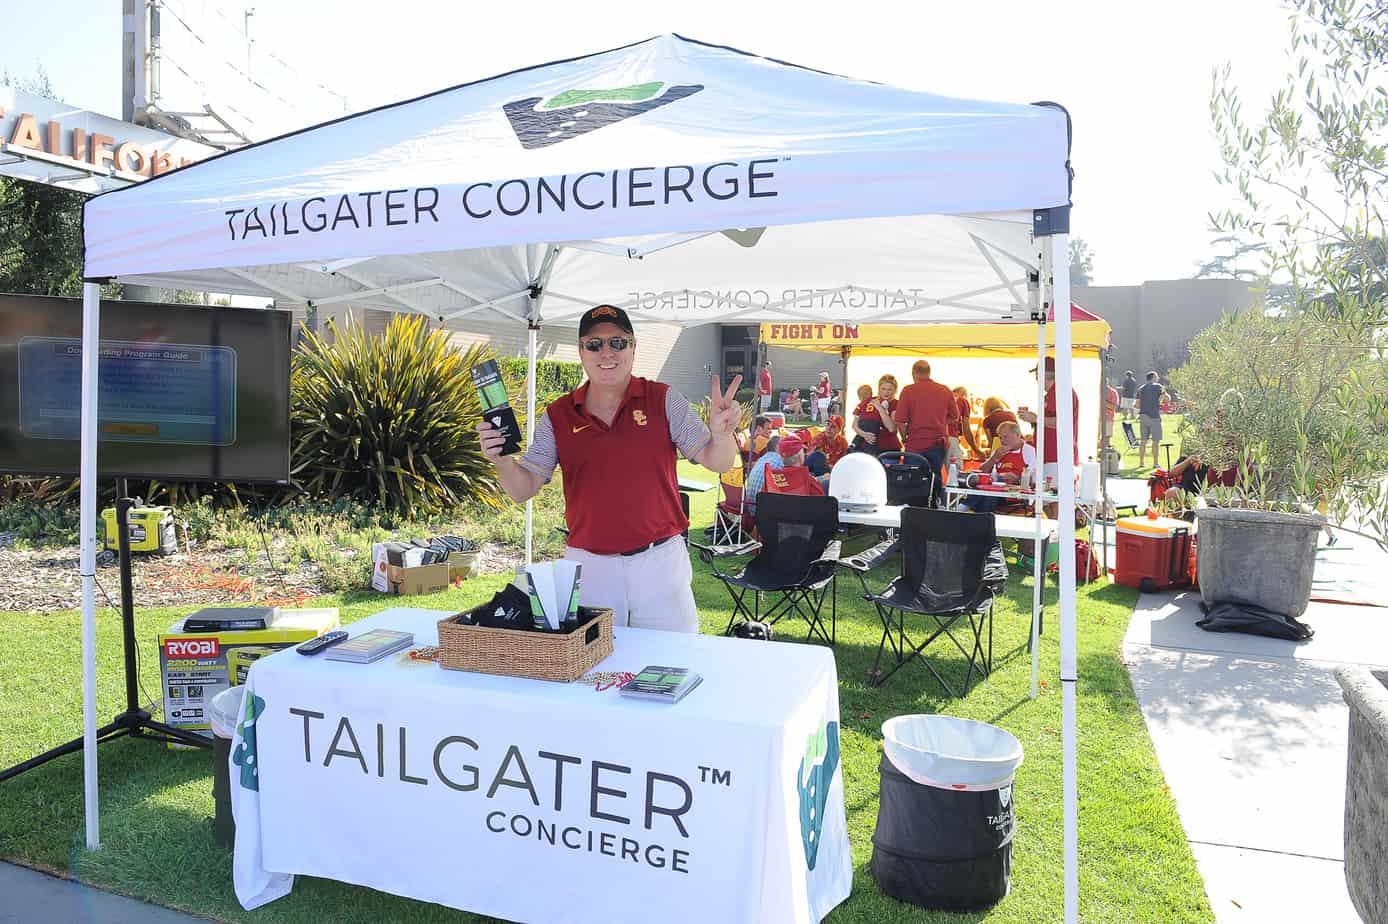 Tailgate Food & USC Tailgate Packages - Tailgater Concierge